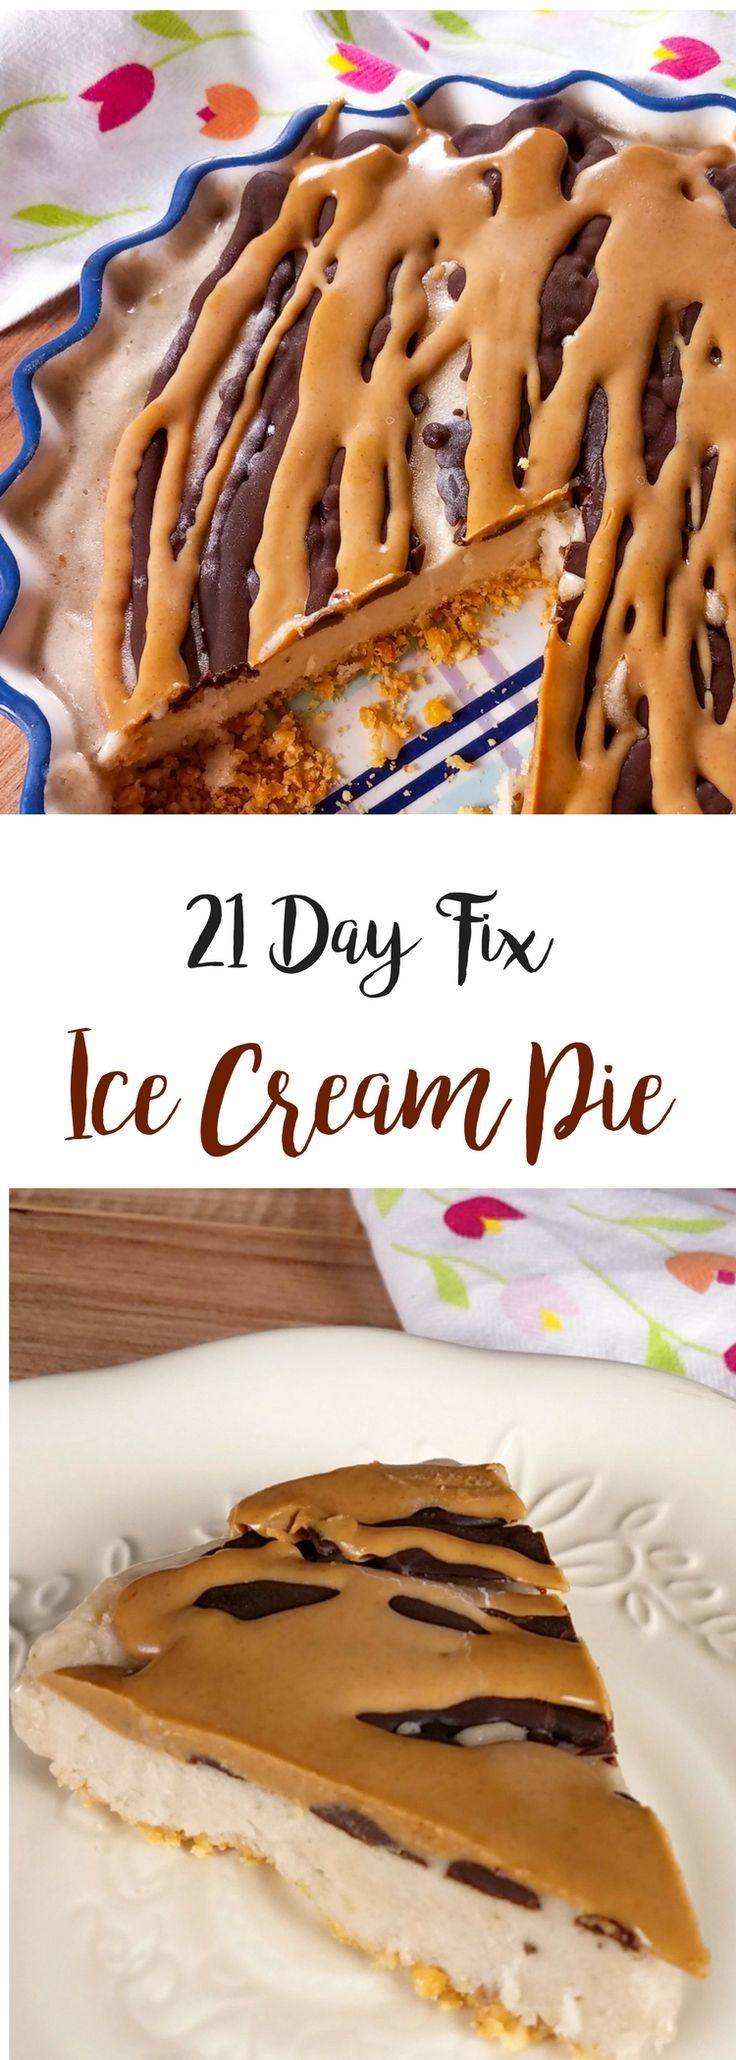 """This 21 Day Fix Ice Cream Pie is seriously SO good...and with the peanut """"crust"""" and homemade magic shell topping, it tastes like my favorite summer treat - the Nutty Buddy cone."""